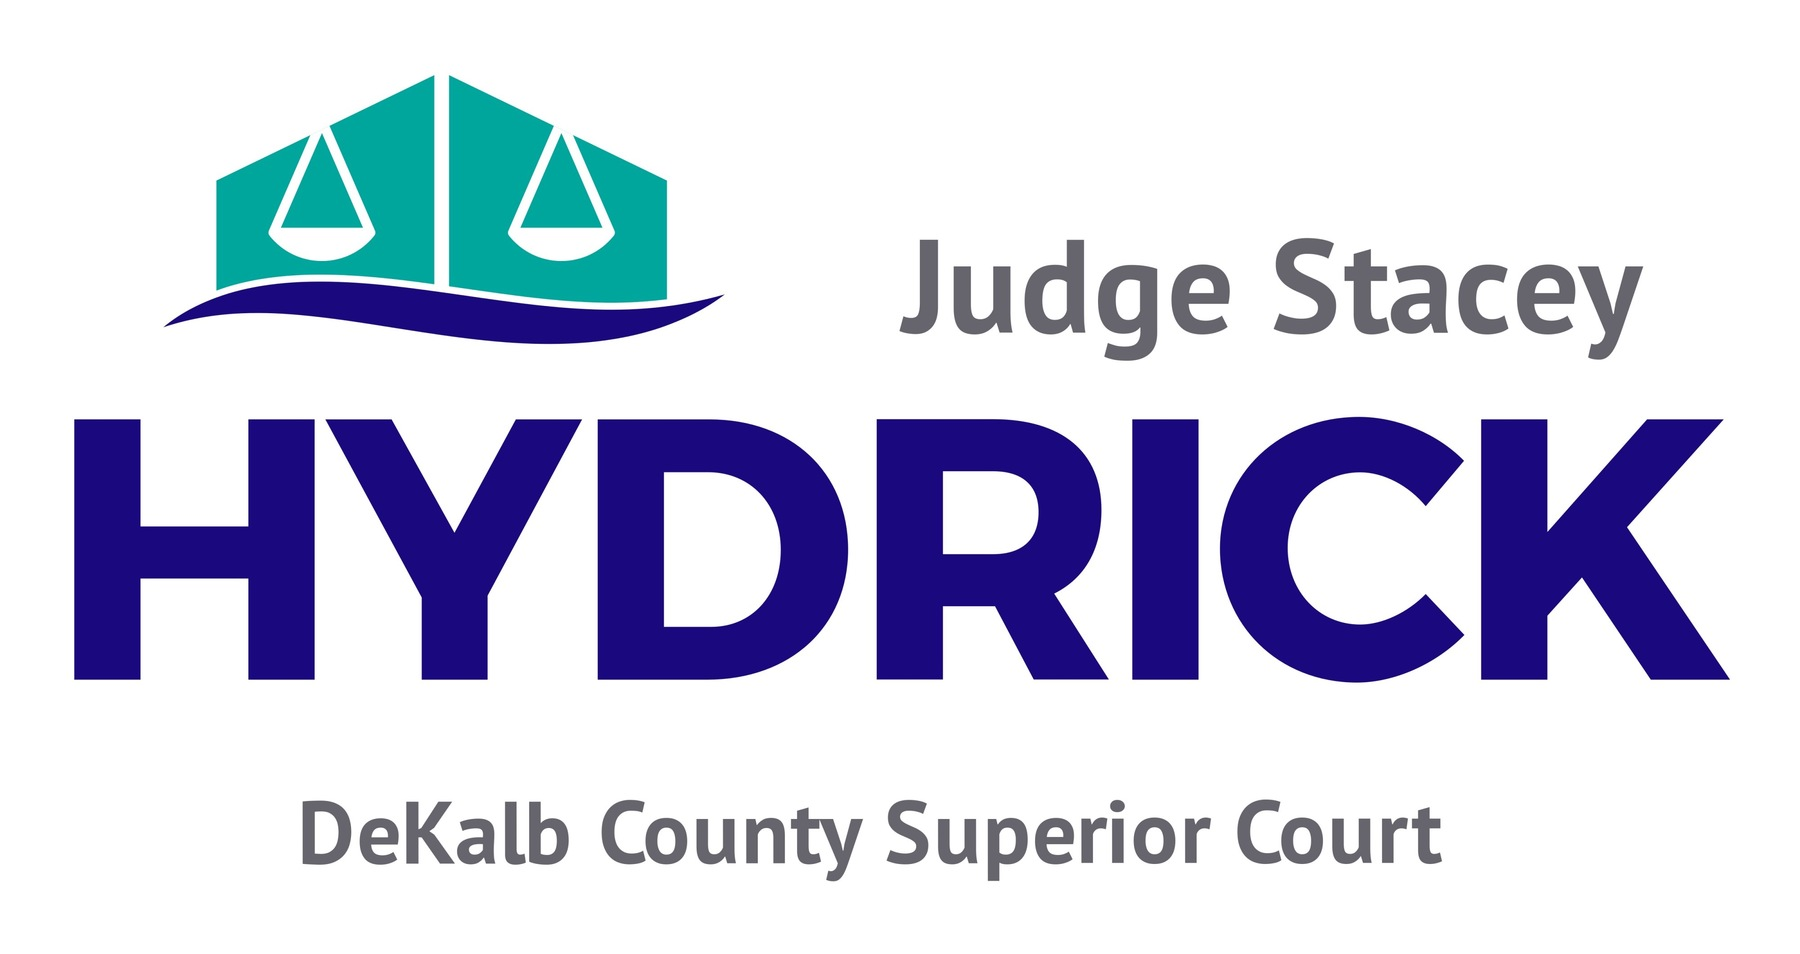 Friends of Judge Hydrick, Inc.: Friends of Judge Hydrick, Inc.